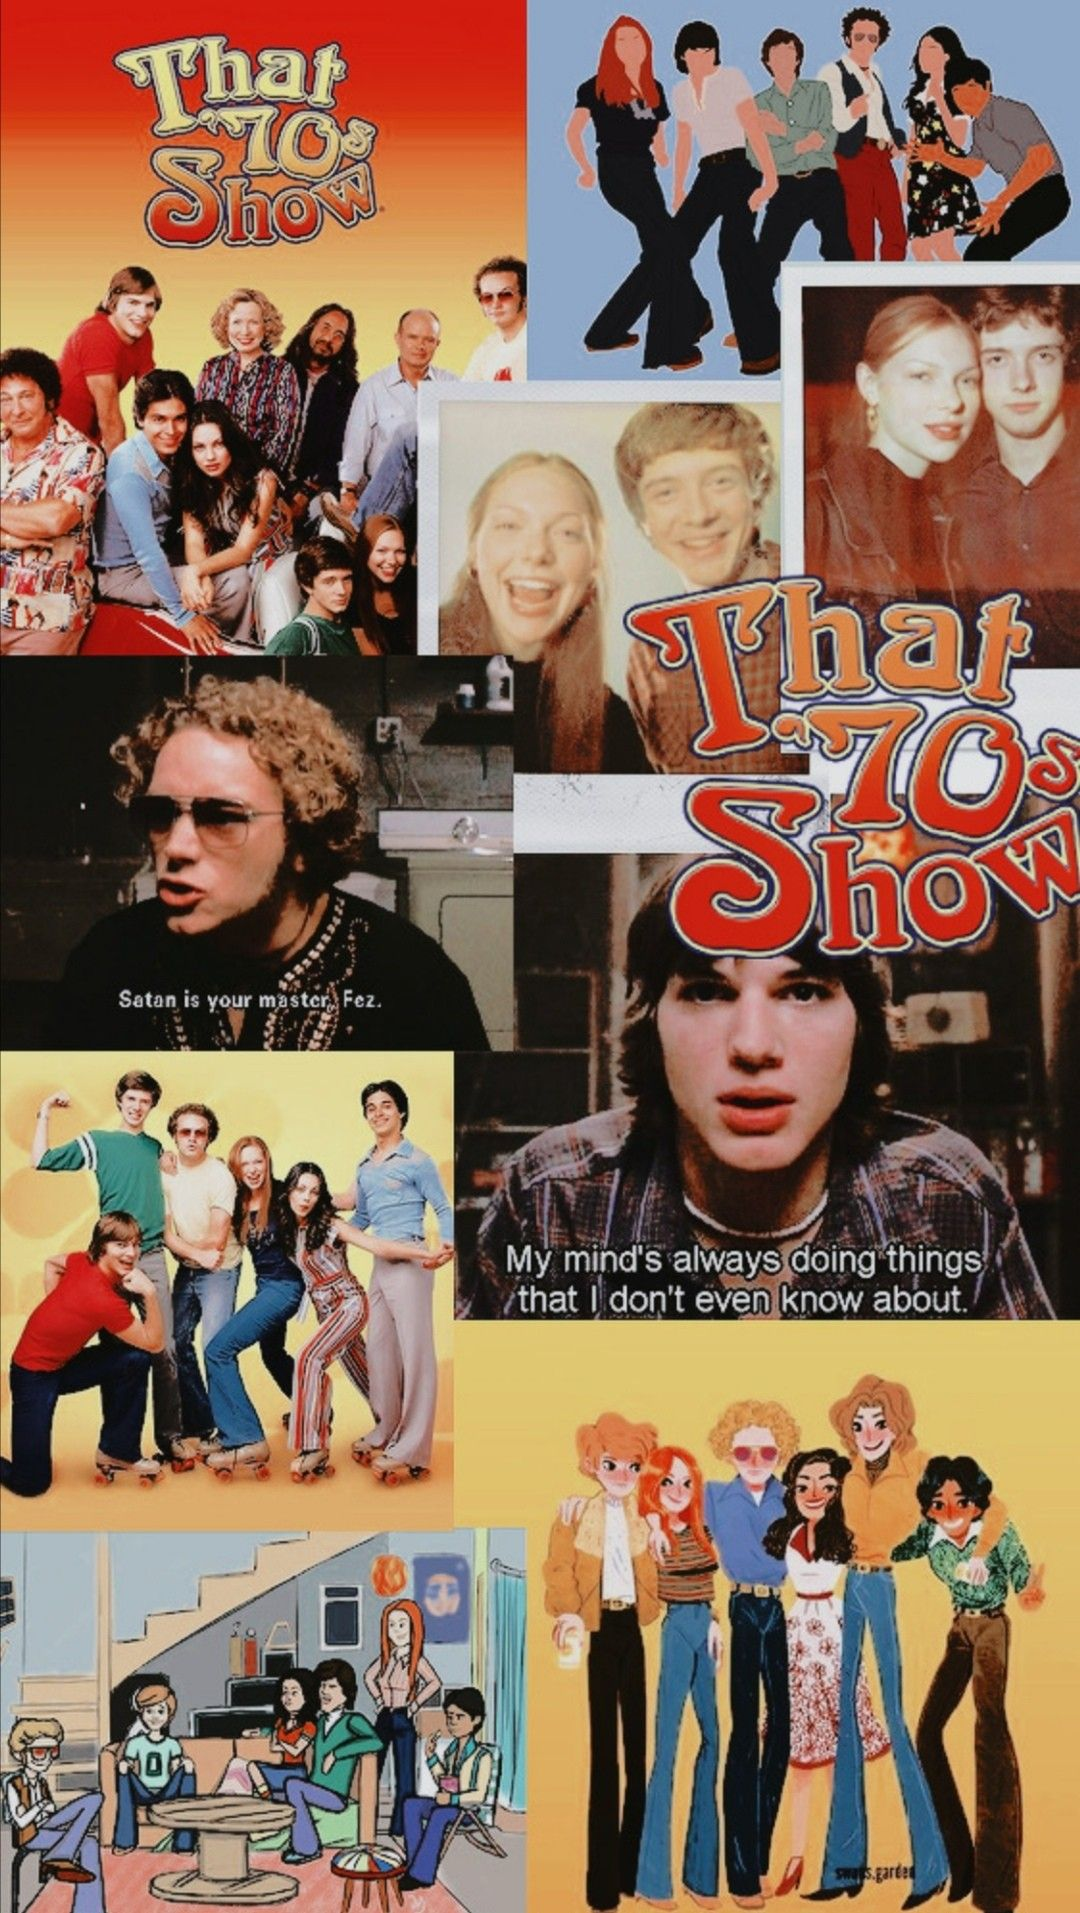 Pin by Hailie💛 on That 70s show in 2020 (With images